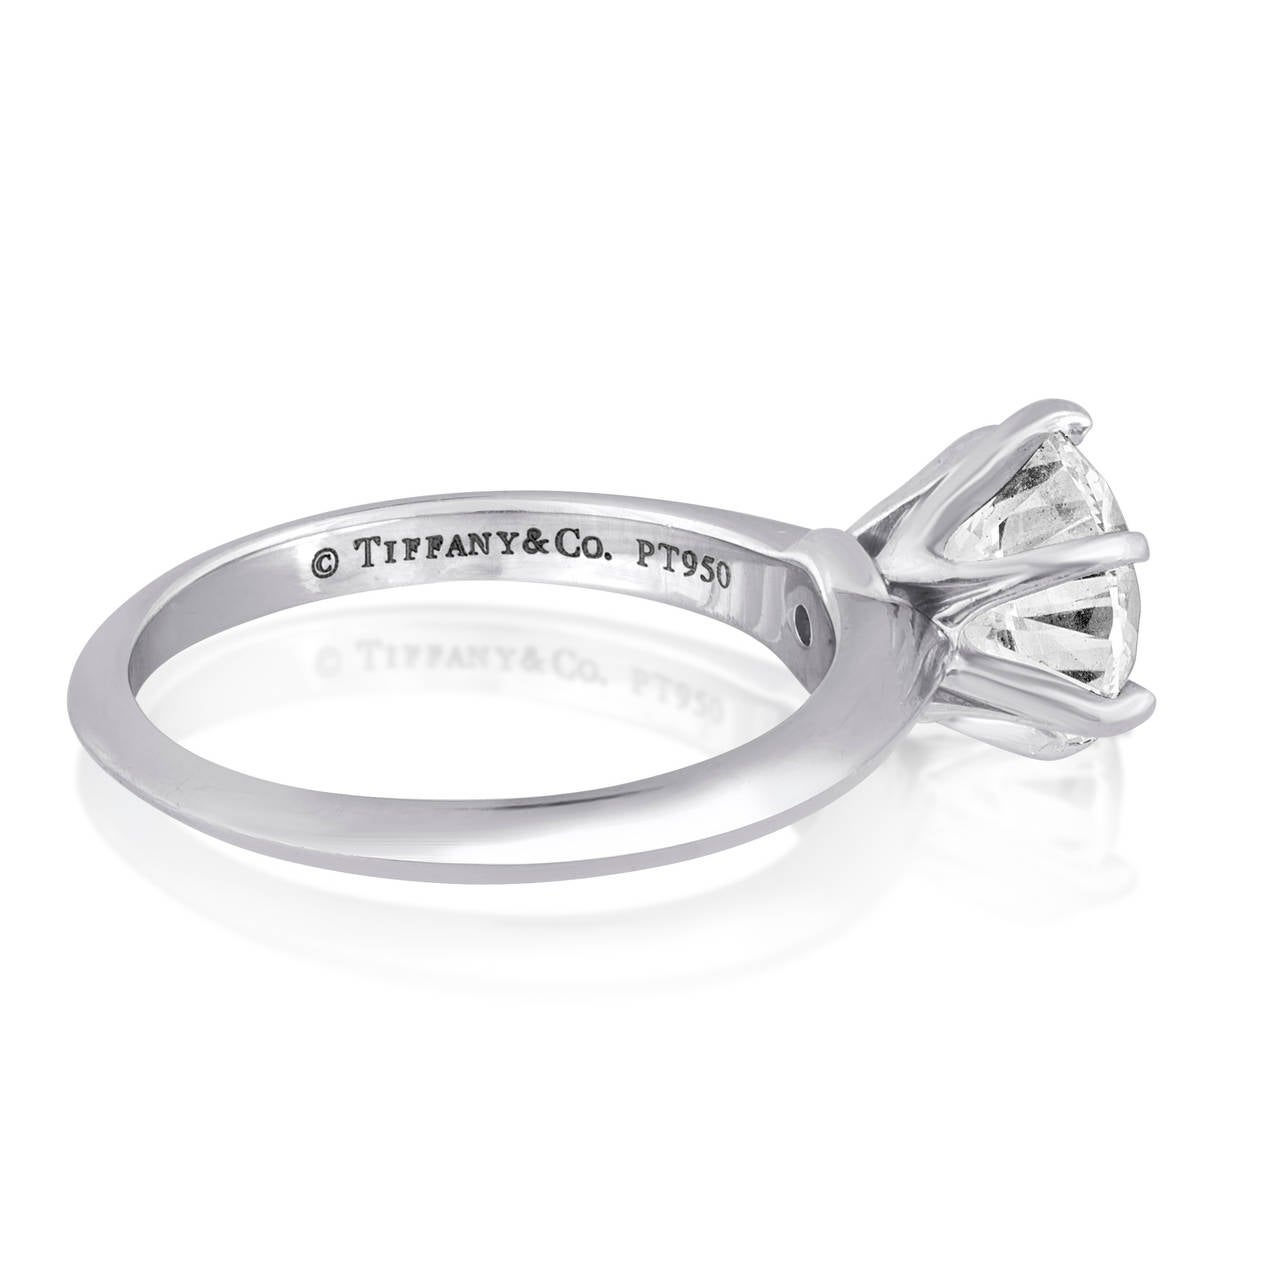 Tiffany & Co. 1.93 Carats G VVS1 Diamond Platinum Ring 2